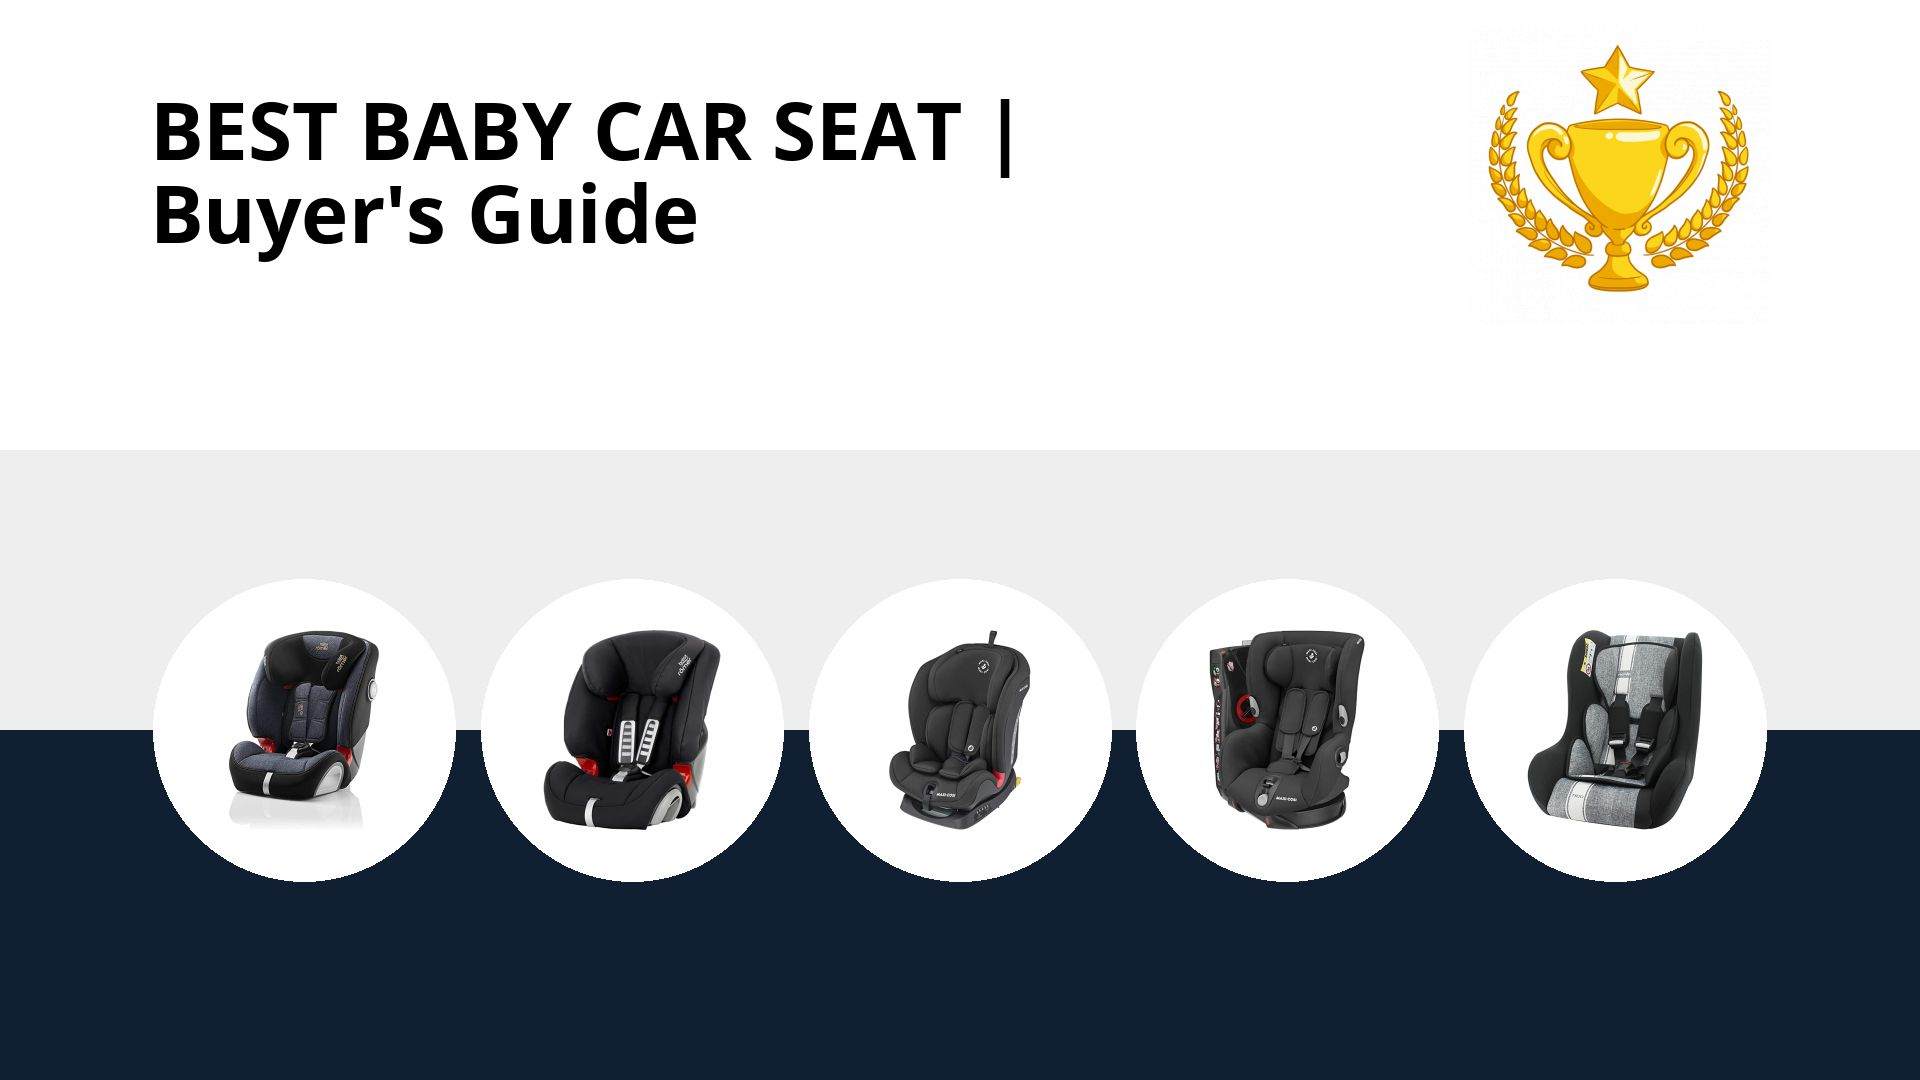 Best Baby Car Seat: image